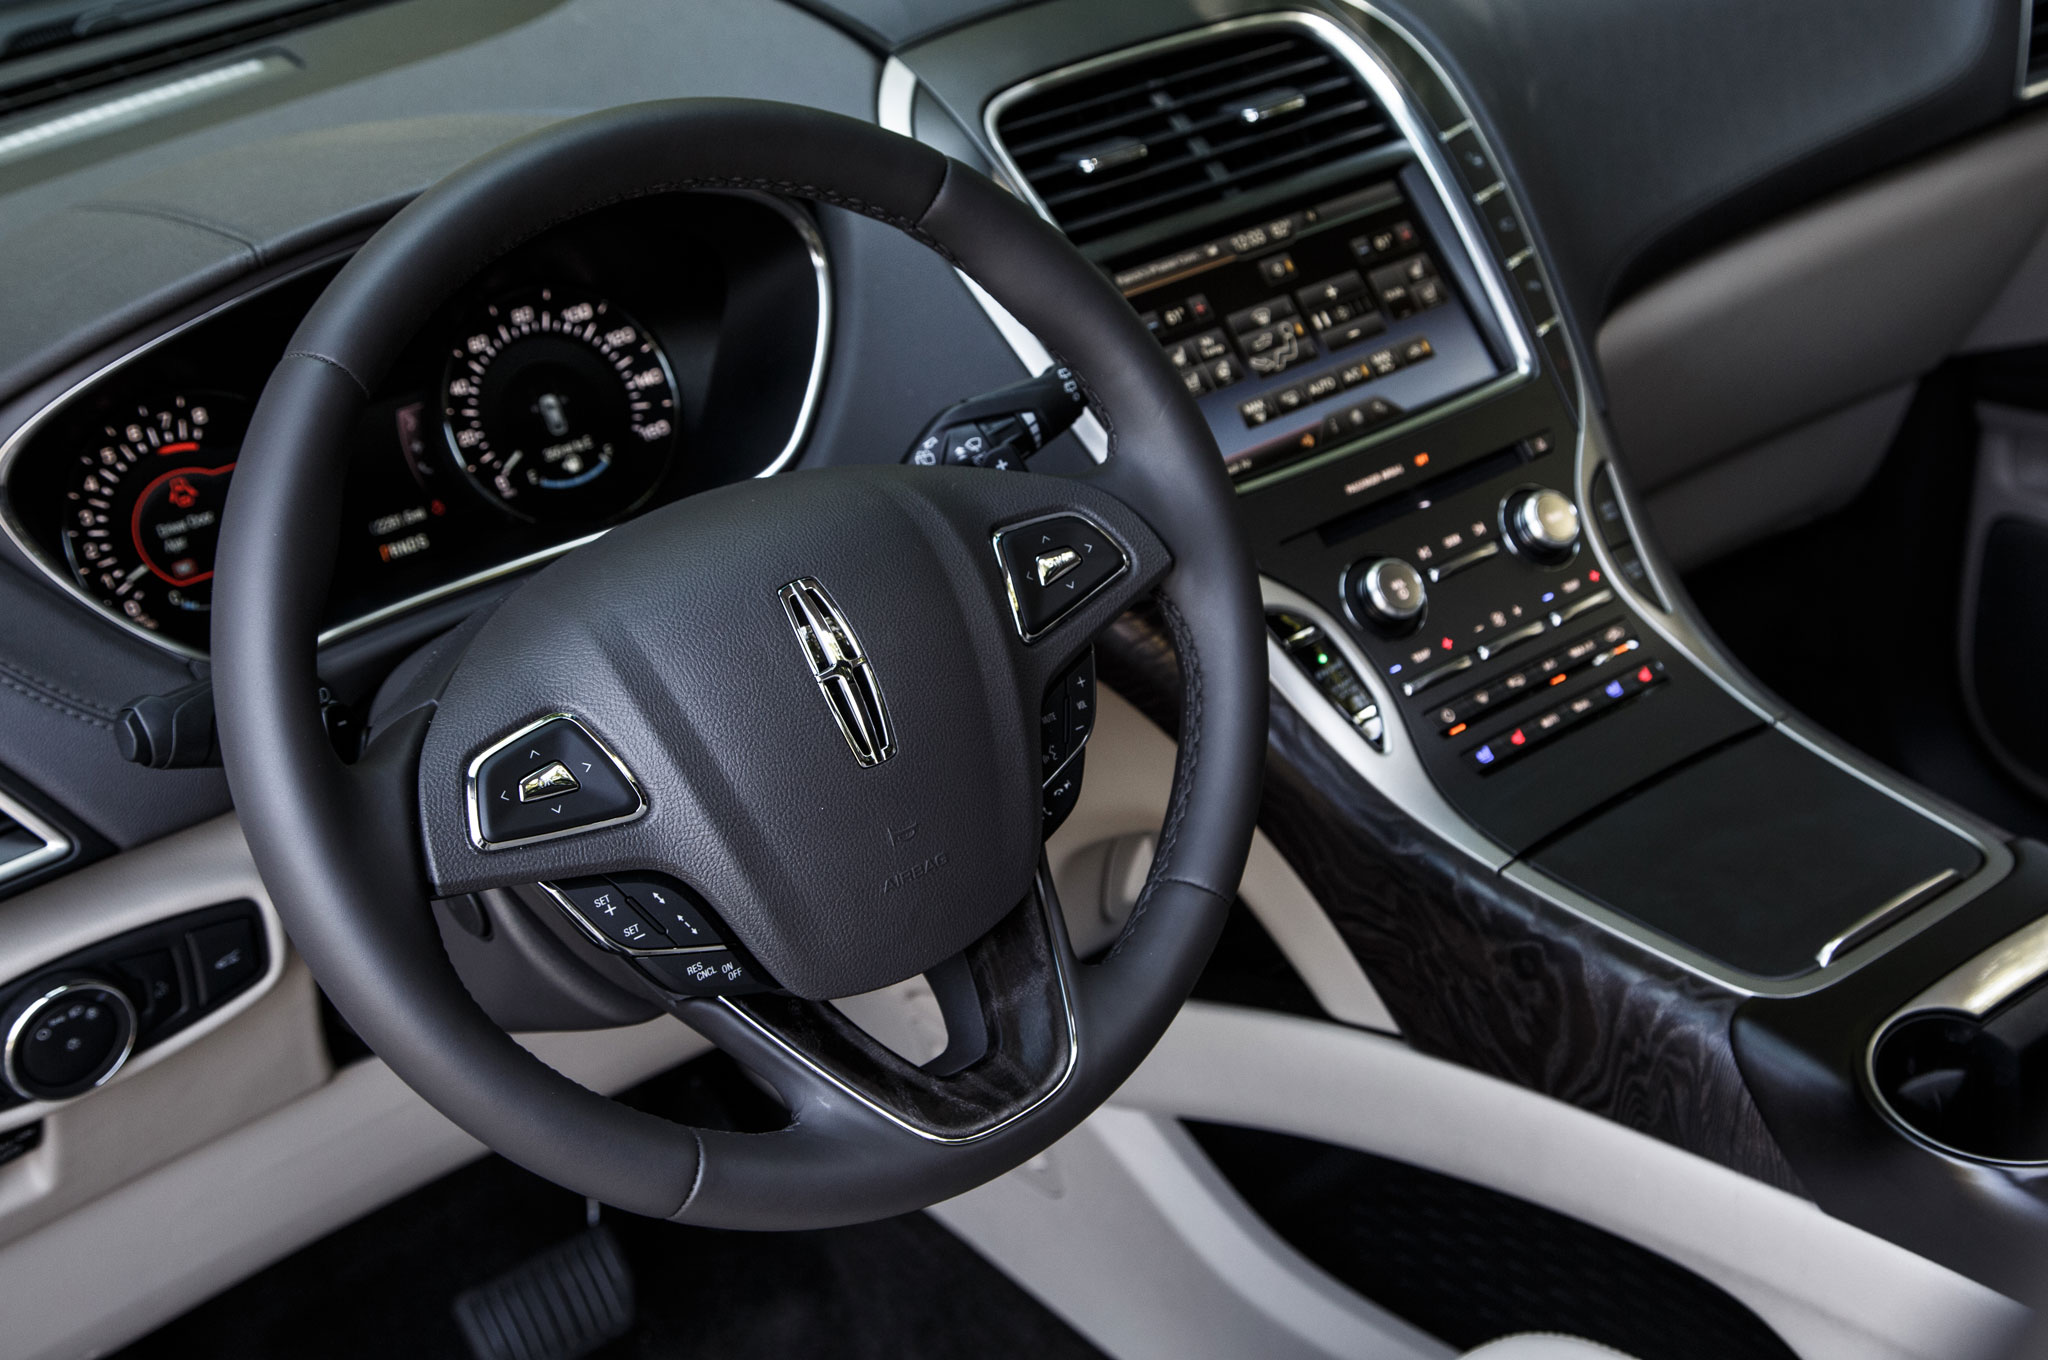 https://st.automobilemag.com/uploads/sites/11/2015/08/2016-Lincoln-MKX-steering-wheel-and-center-stack-01.jpg